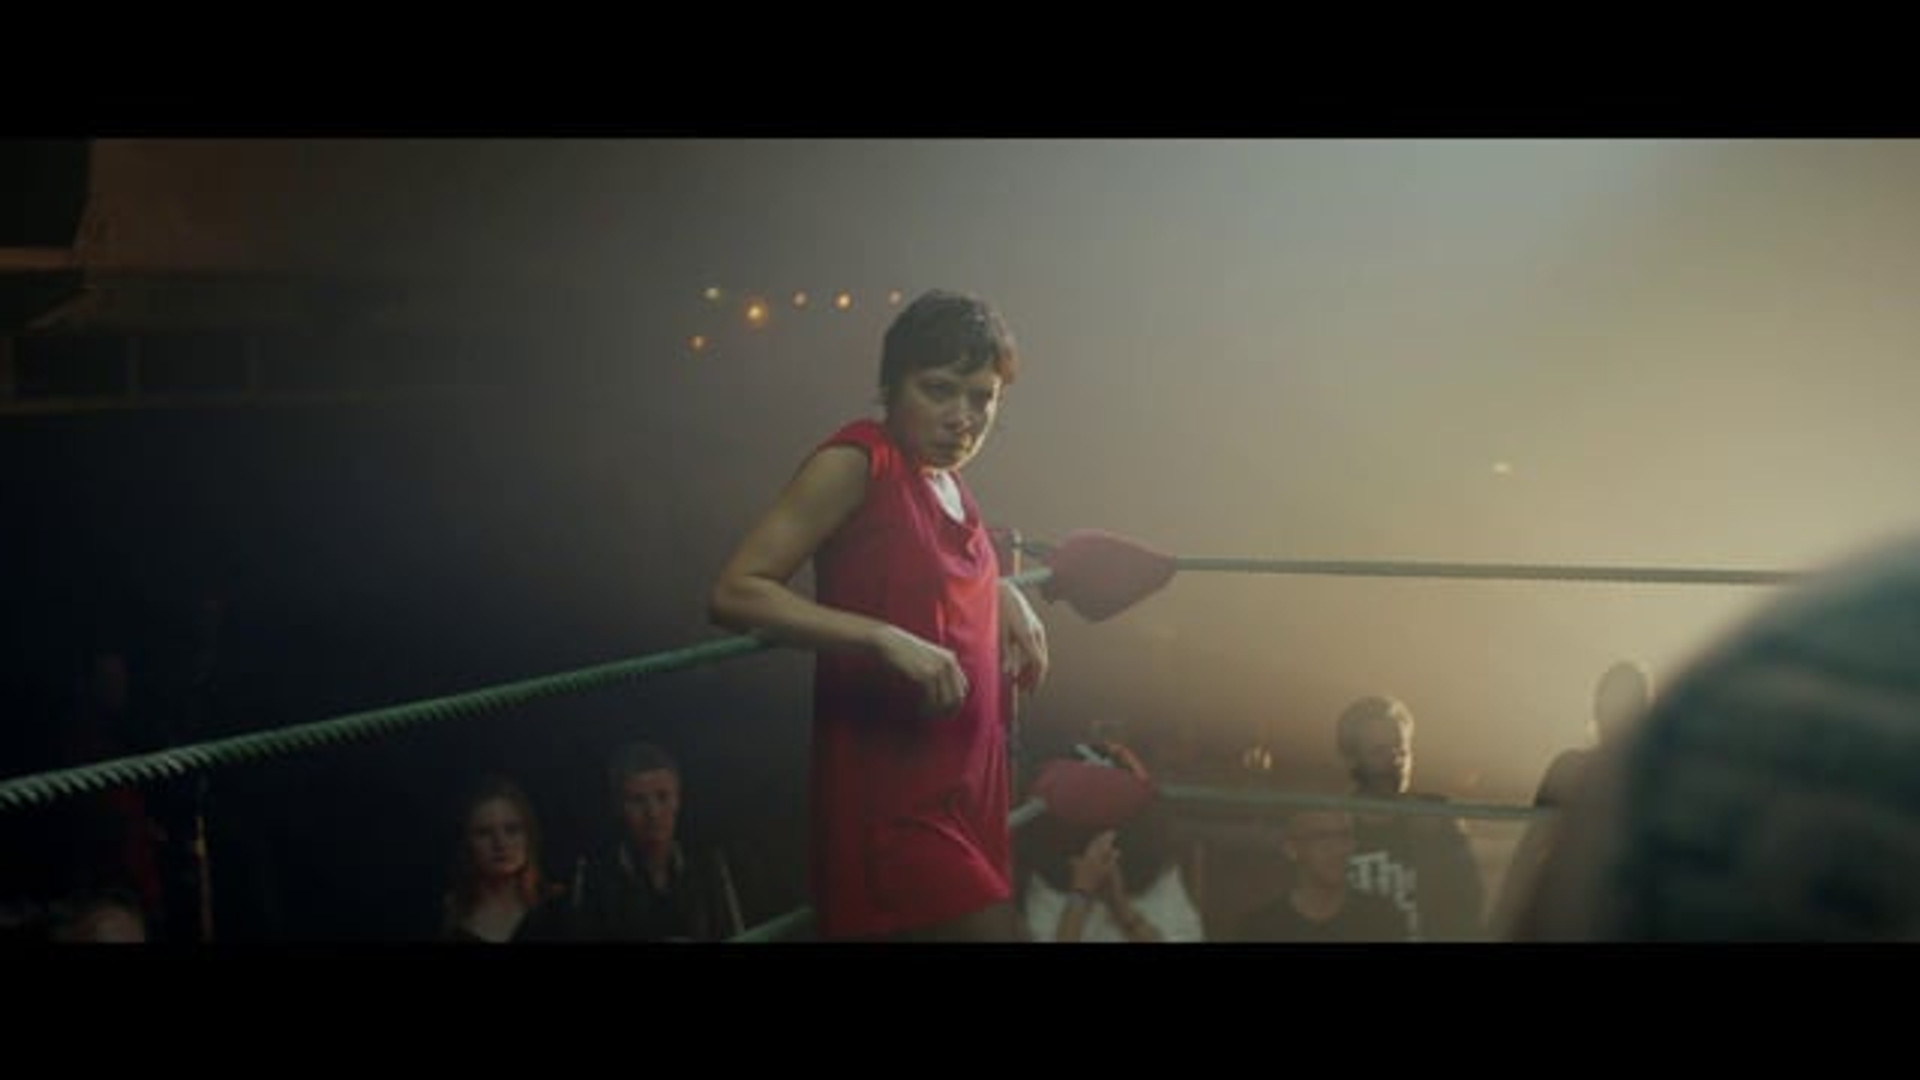 MUSIC CLIP | YOUR FREEDOM IS THE END OF ME | MÉLANIE DE BIASIO | 2017